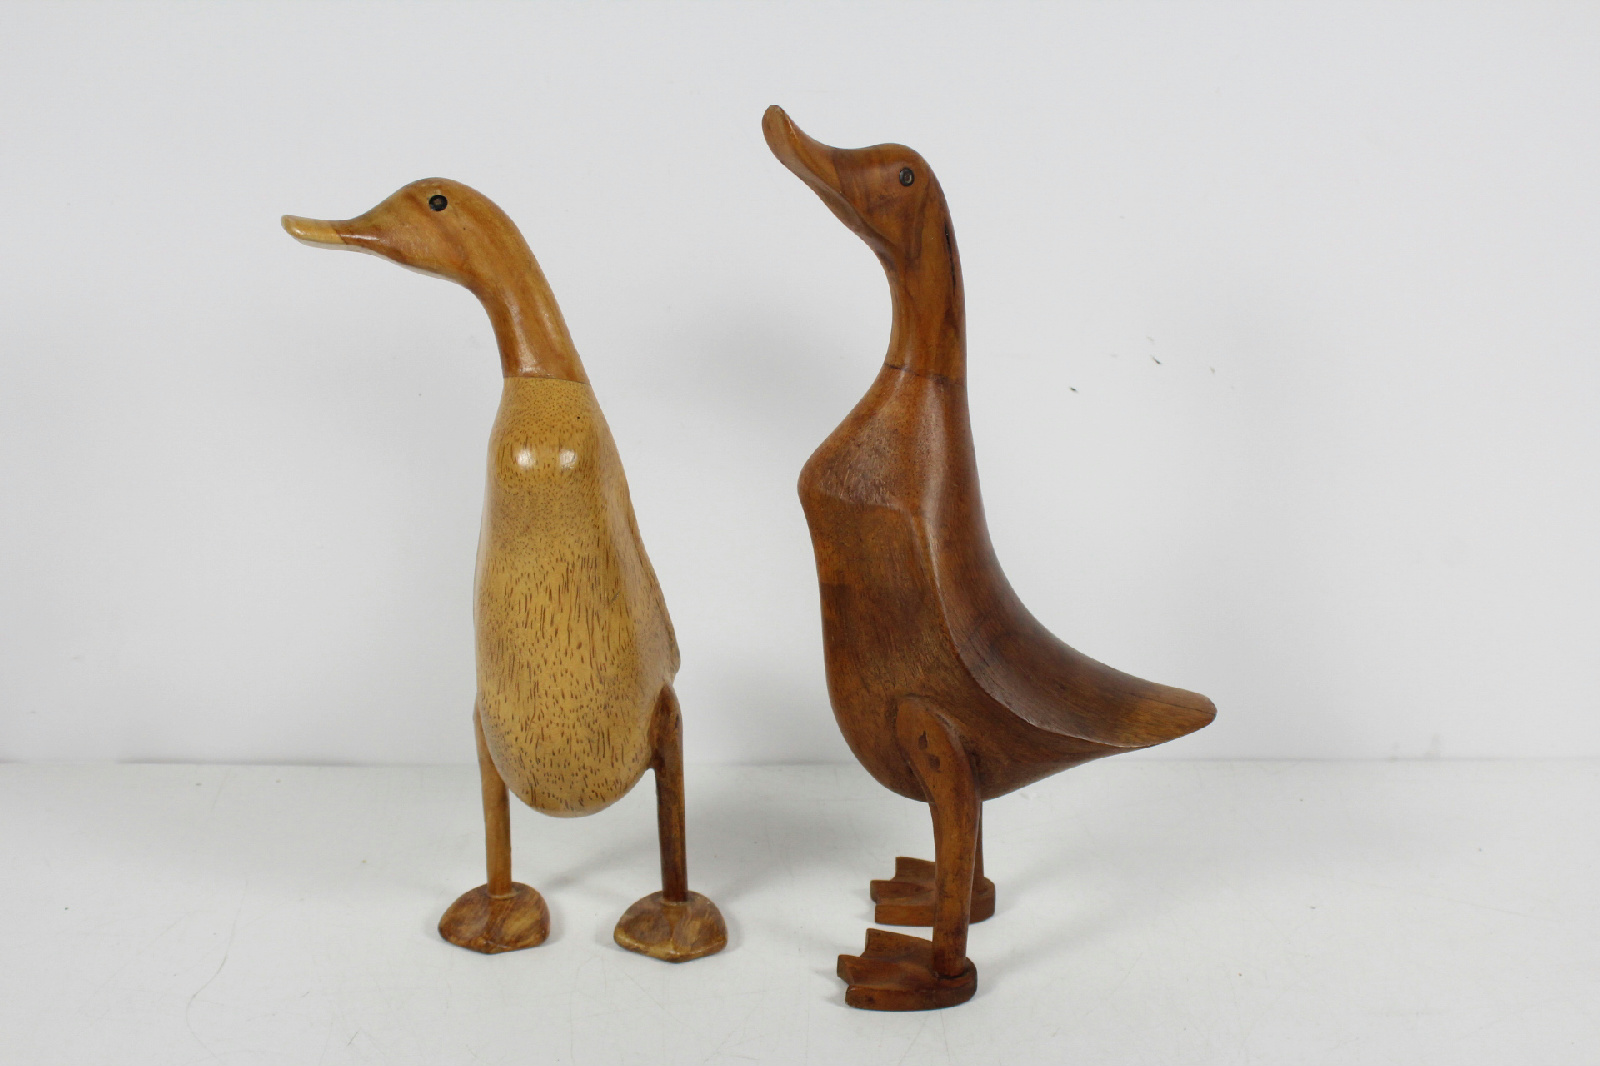 Dcuk brand carved decorative wooden duck figurine